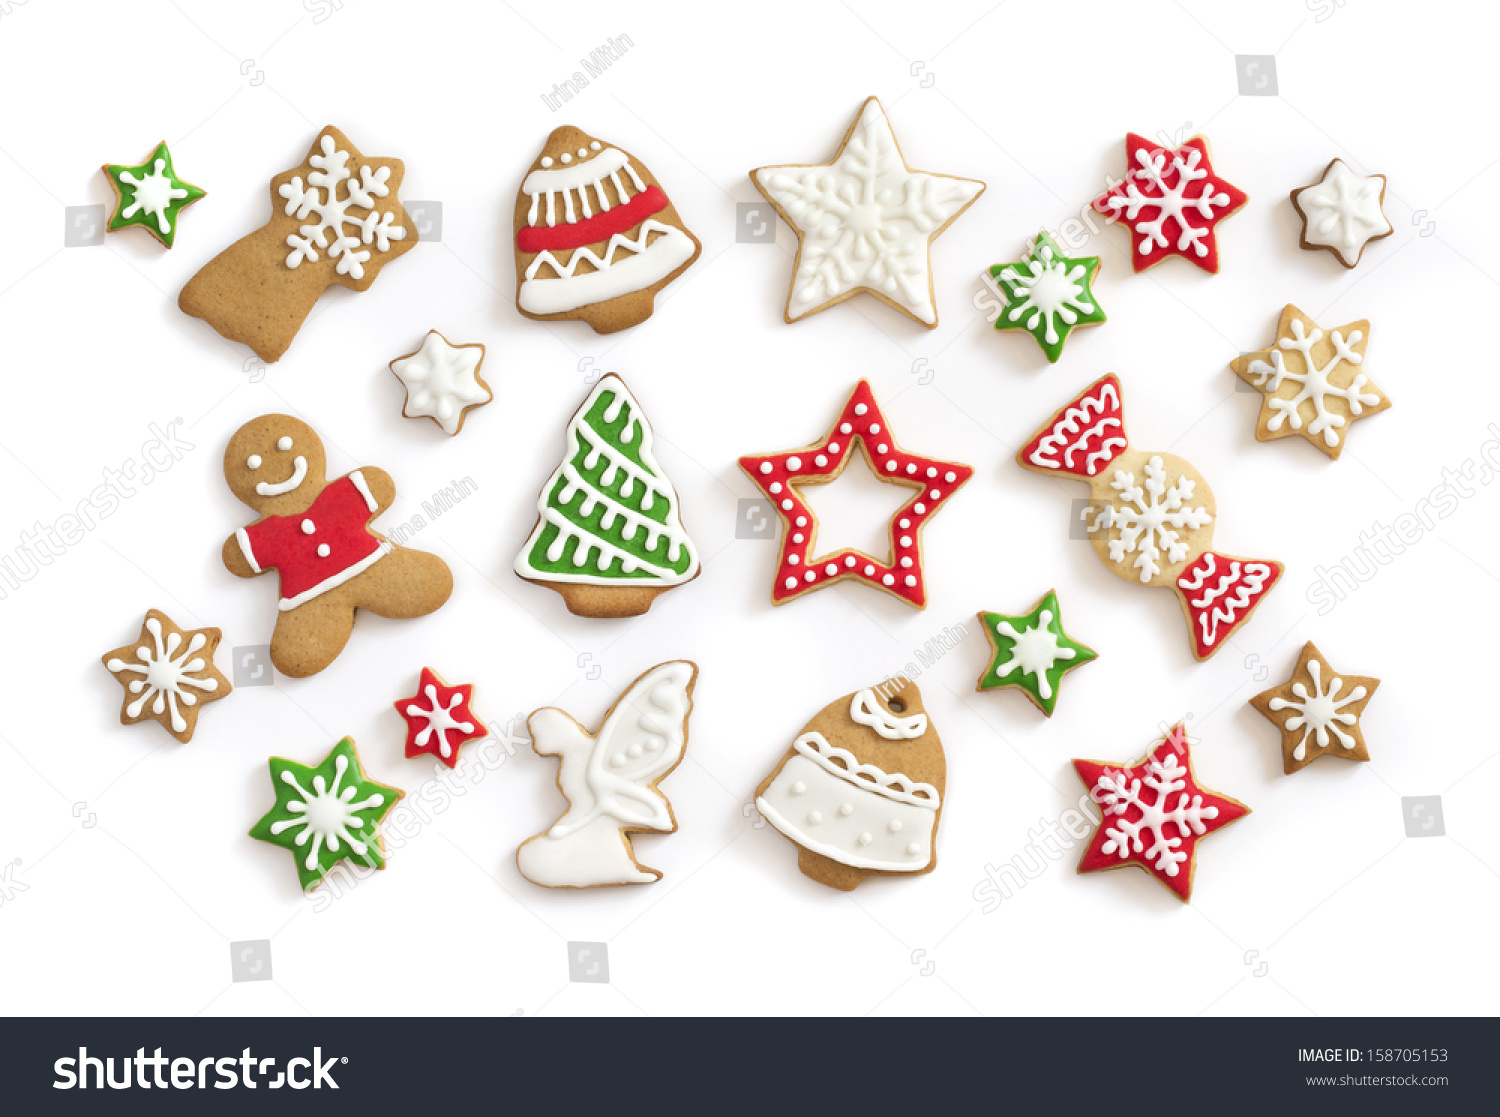 Gingerbread Cookies On White Background Snowflake Stock